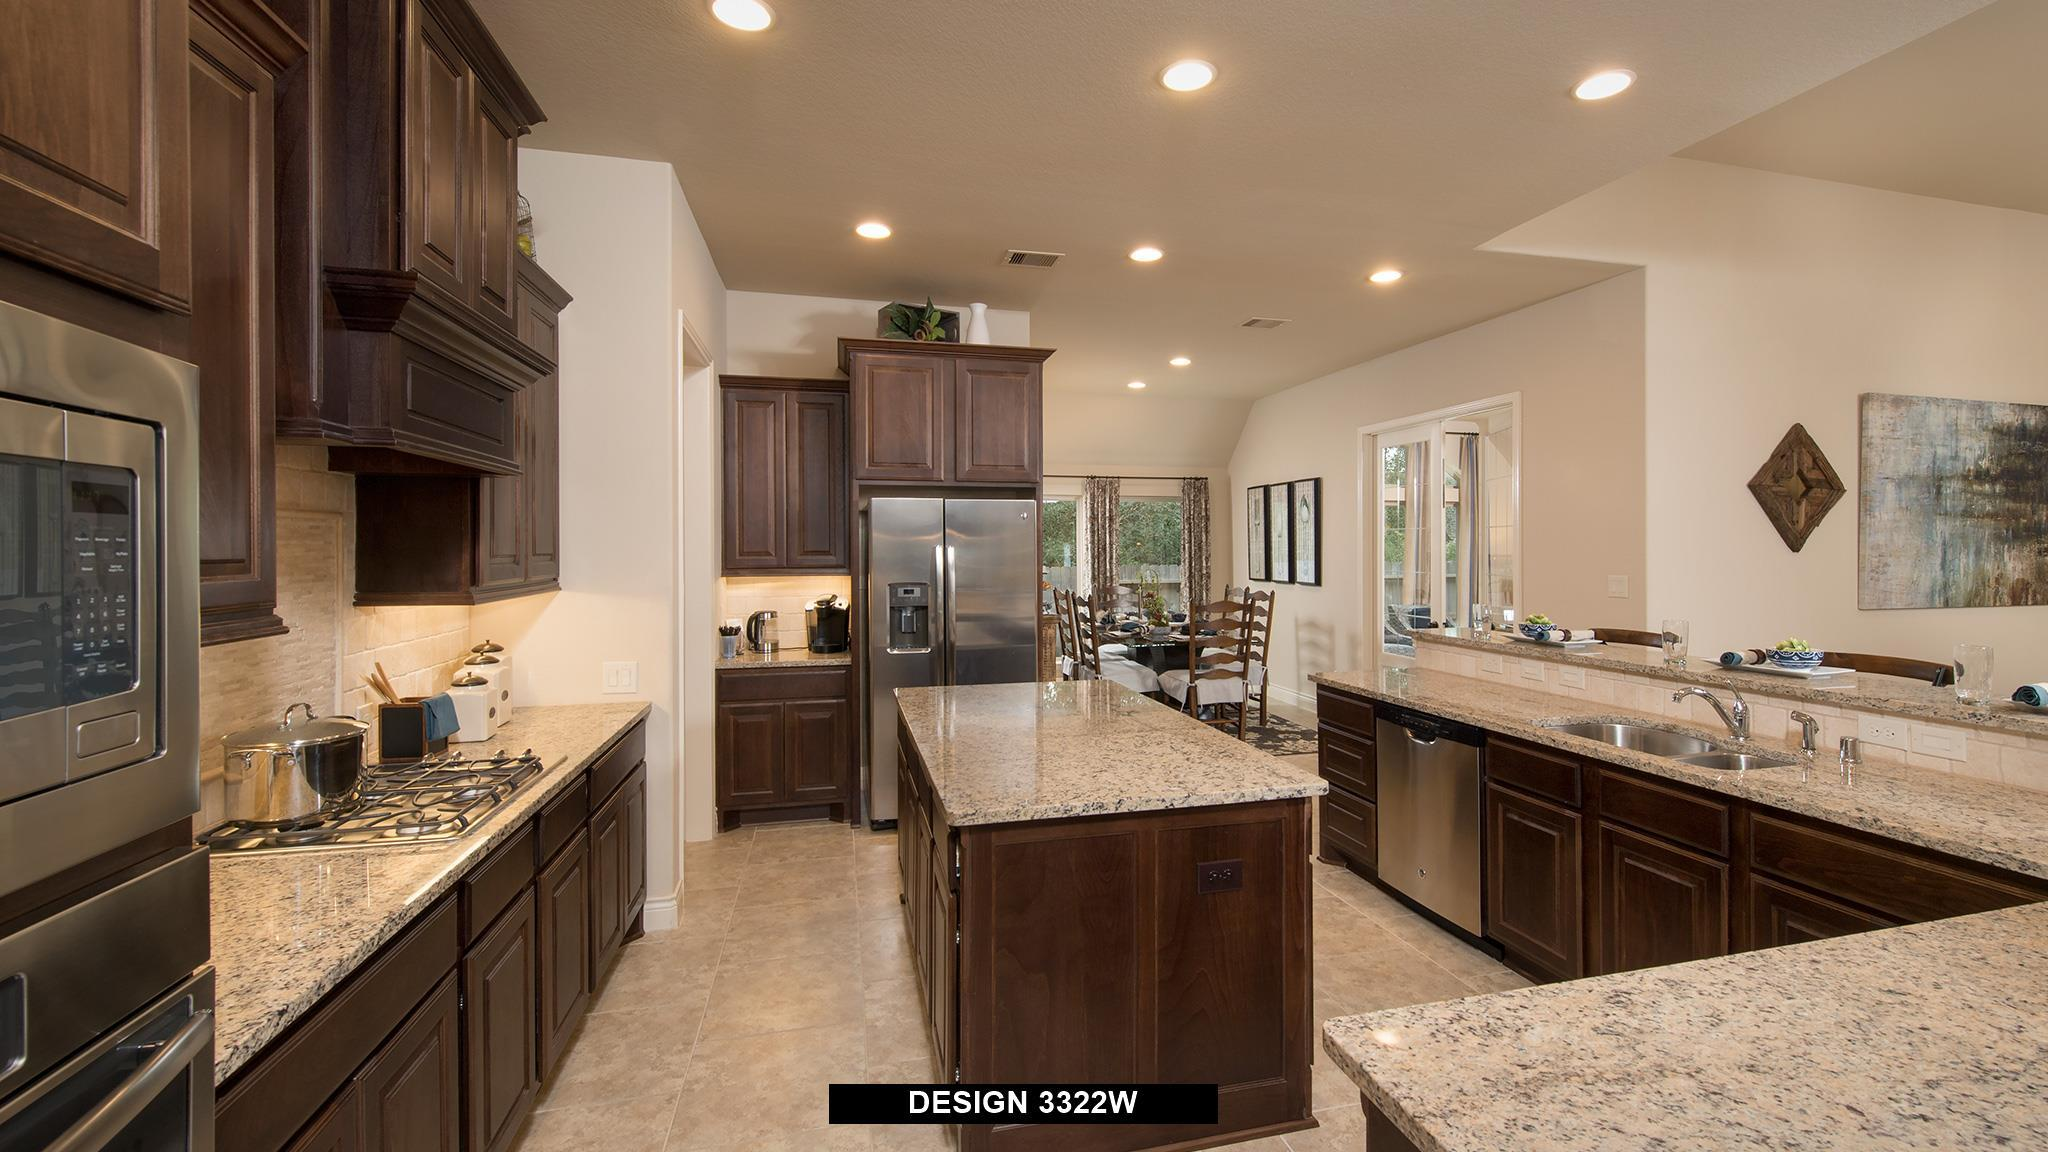 Kitchen featured in the 3322W By Perry Homes in Austin, TX